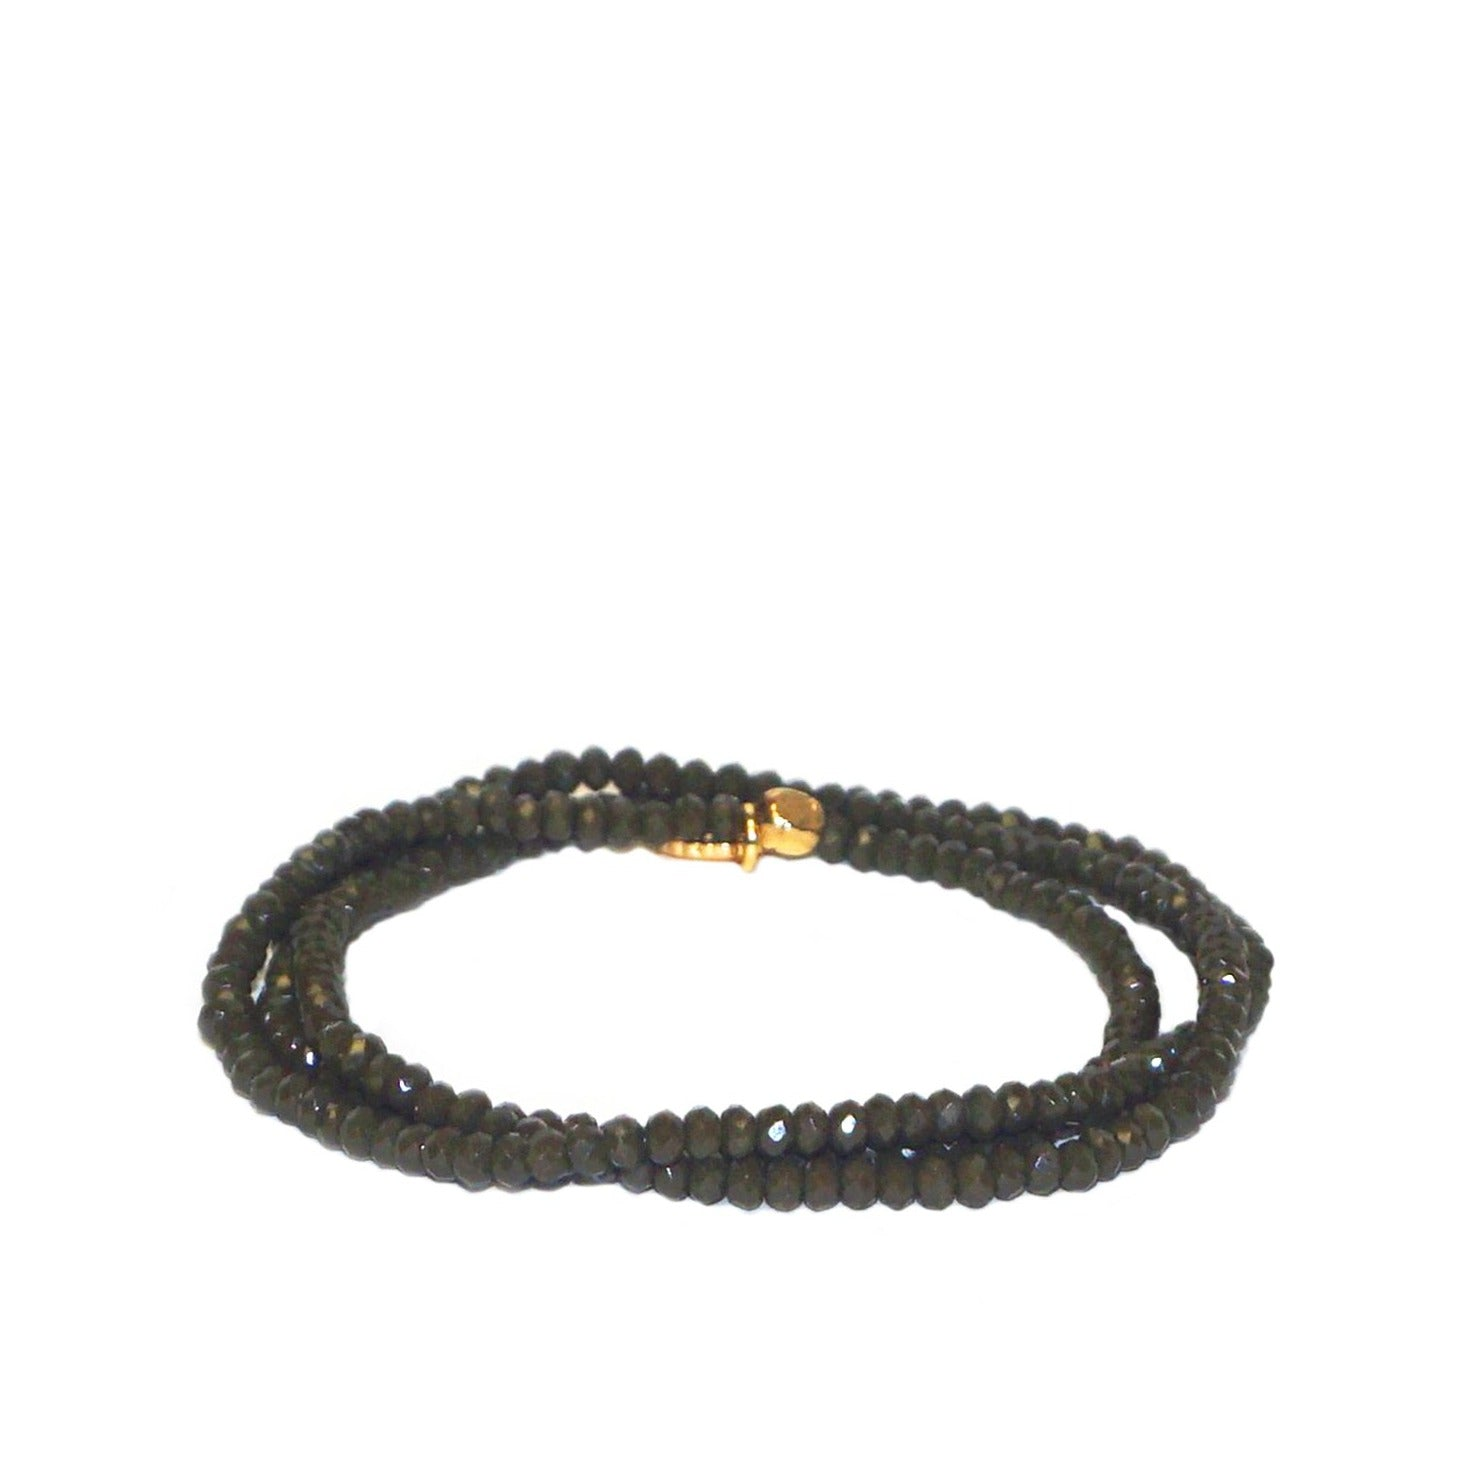 Crystal Beaded Stretch Bracelet - Olive